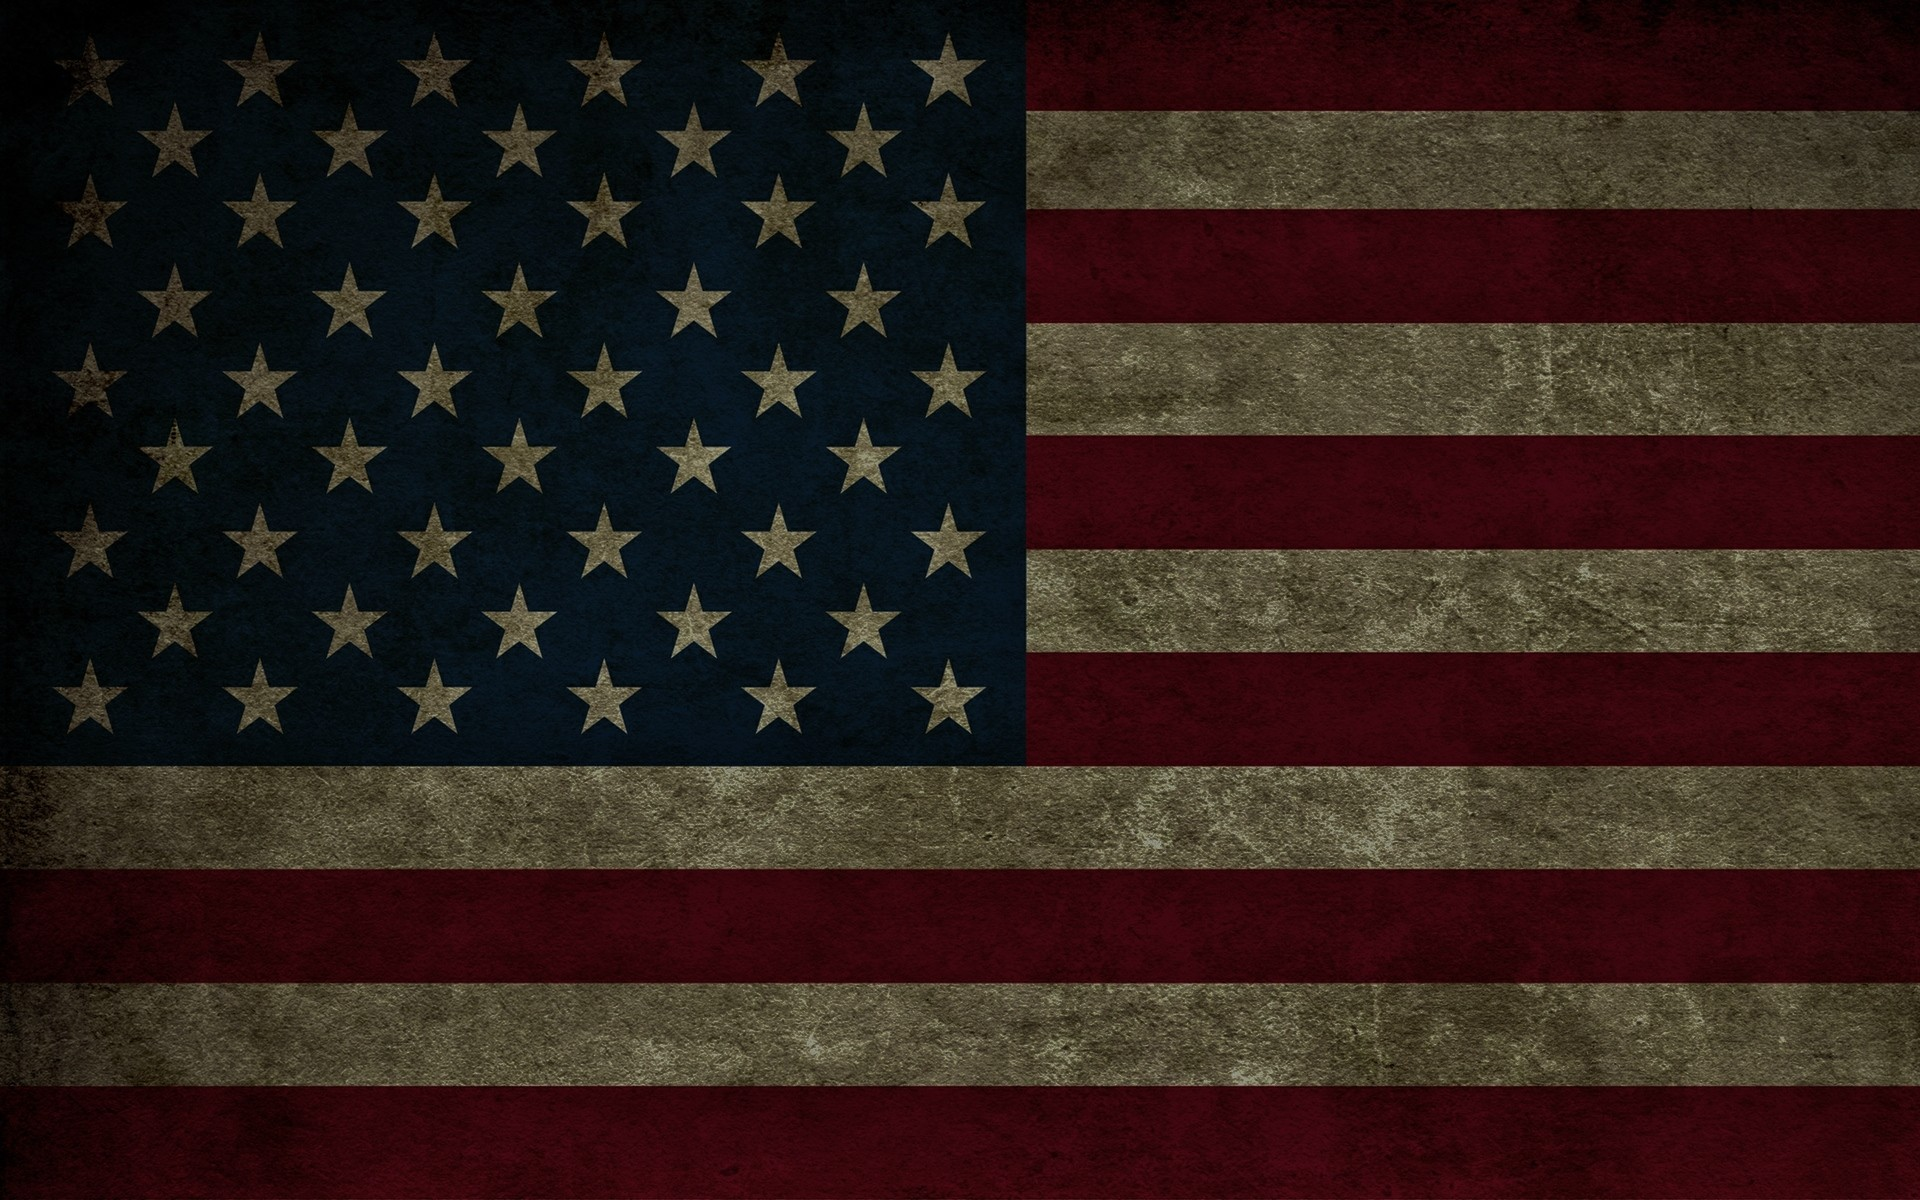 American Flag Wallpaper Download Free Cool Full Hd Wallpapers Of